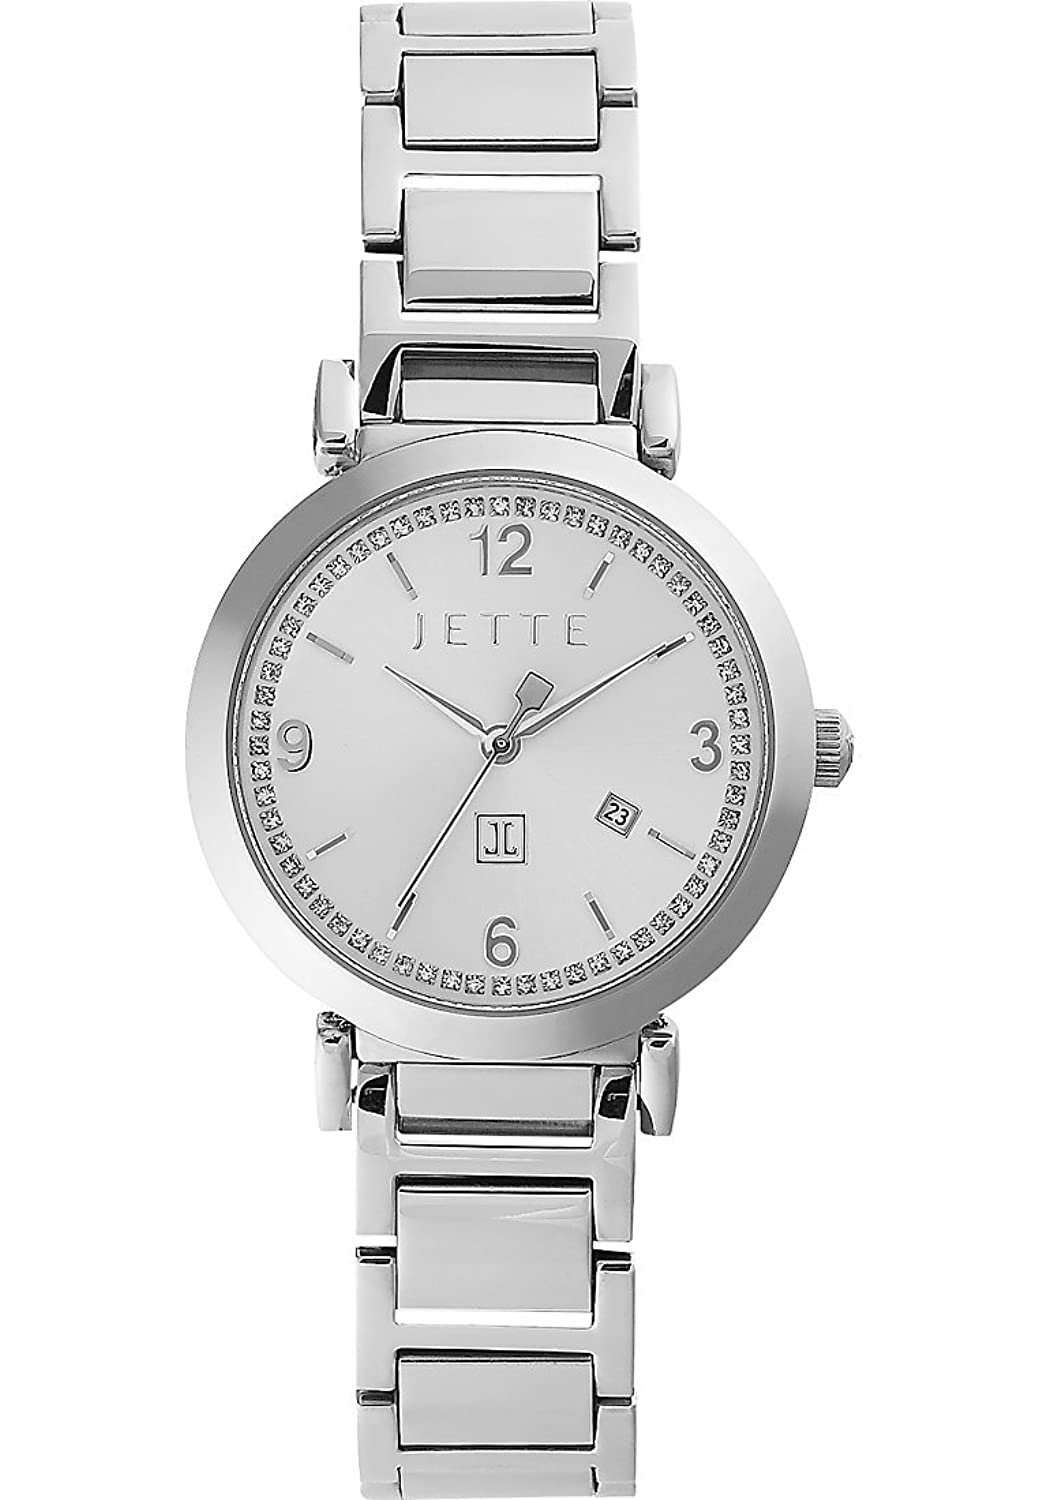 JETTE Time Damen-Armbanduhr DIVA Analog Quarz (One Size - silberfarben)